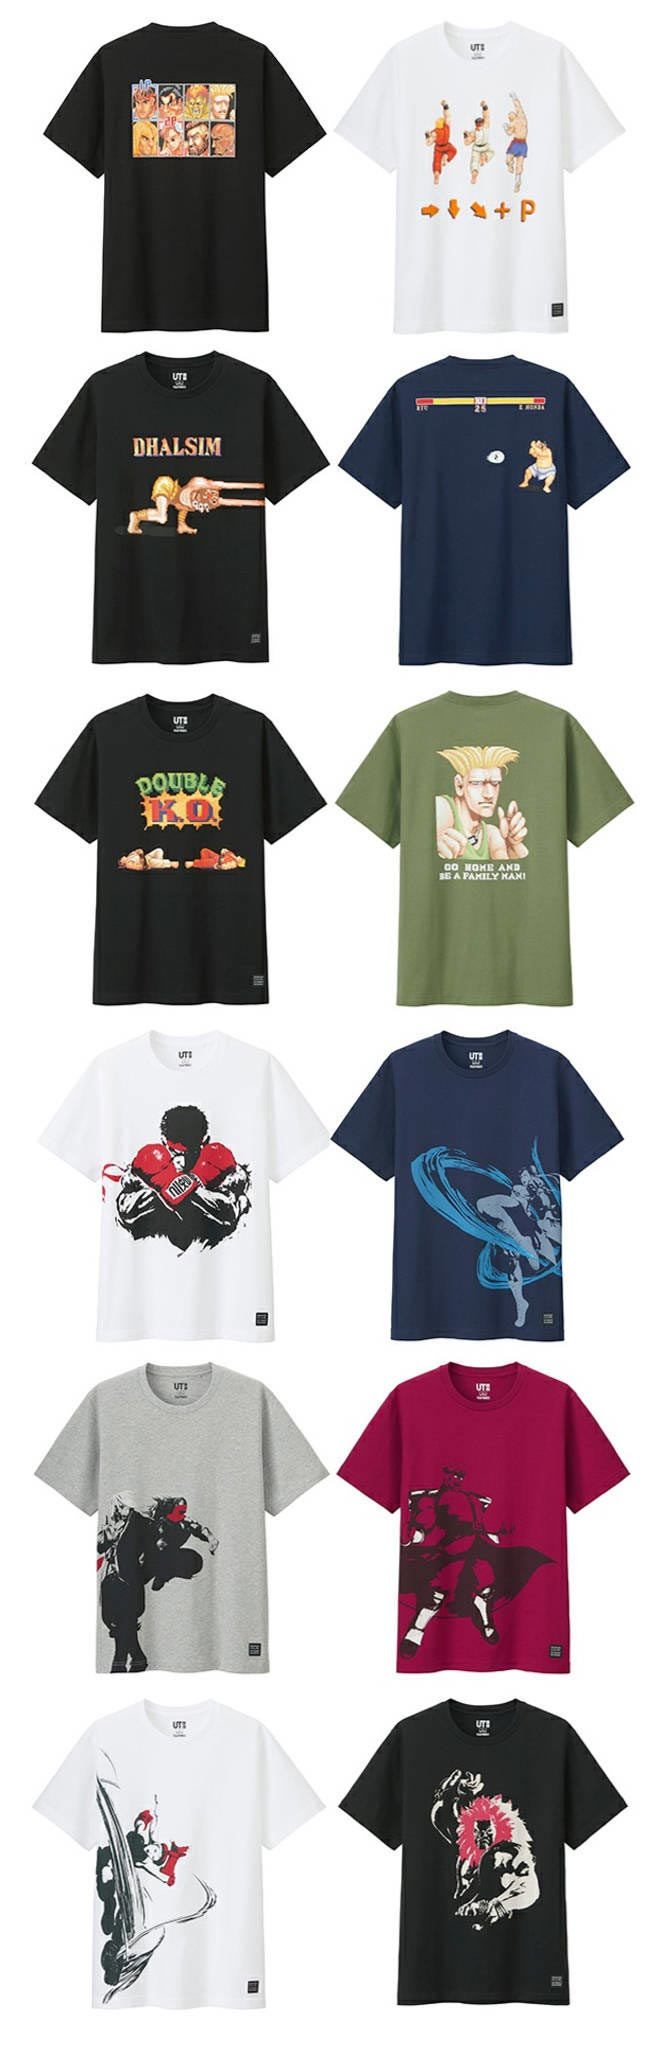 Street Fighter UNIQLO T-shirts 14 out of 17 image gallery